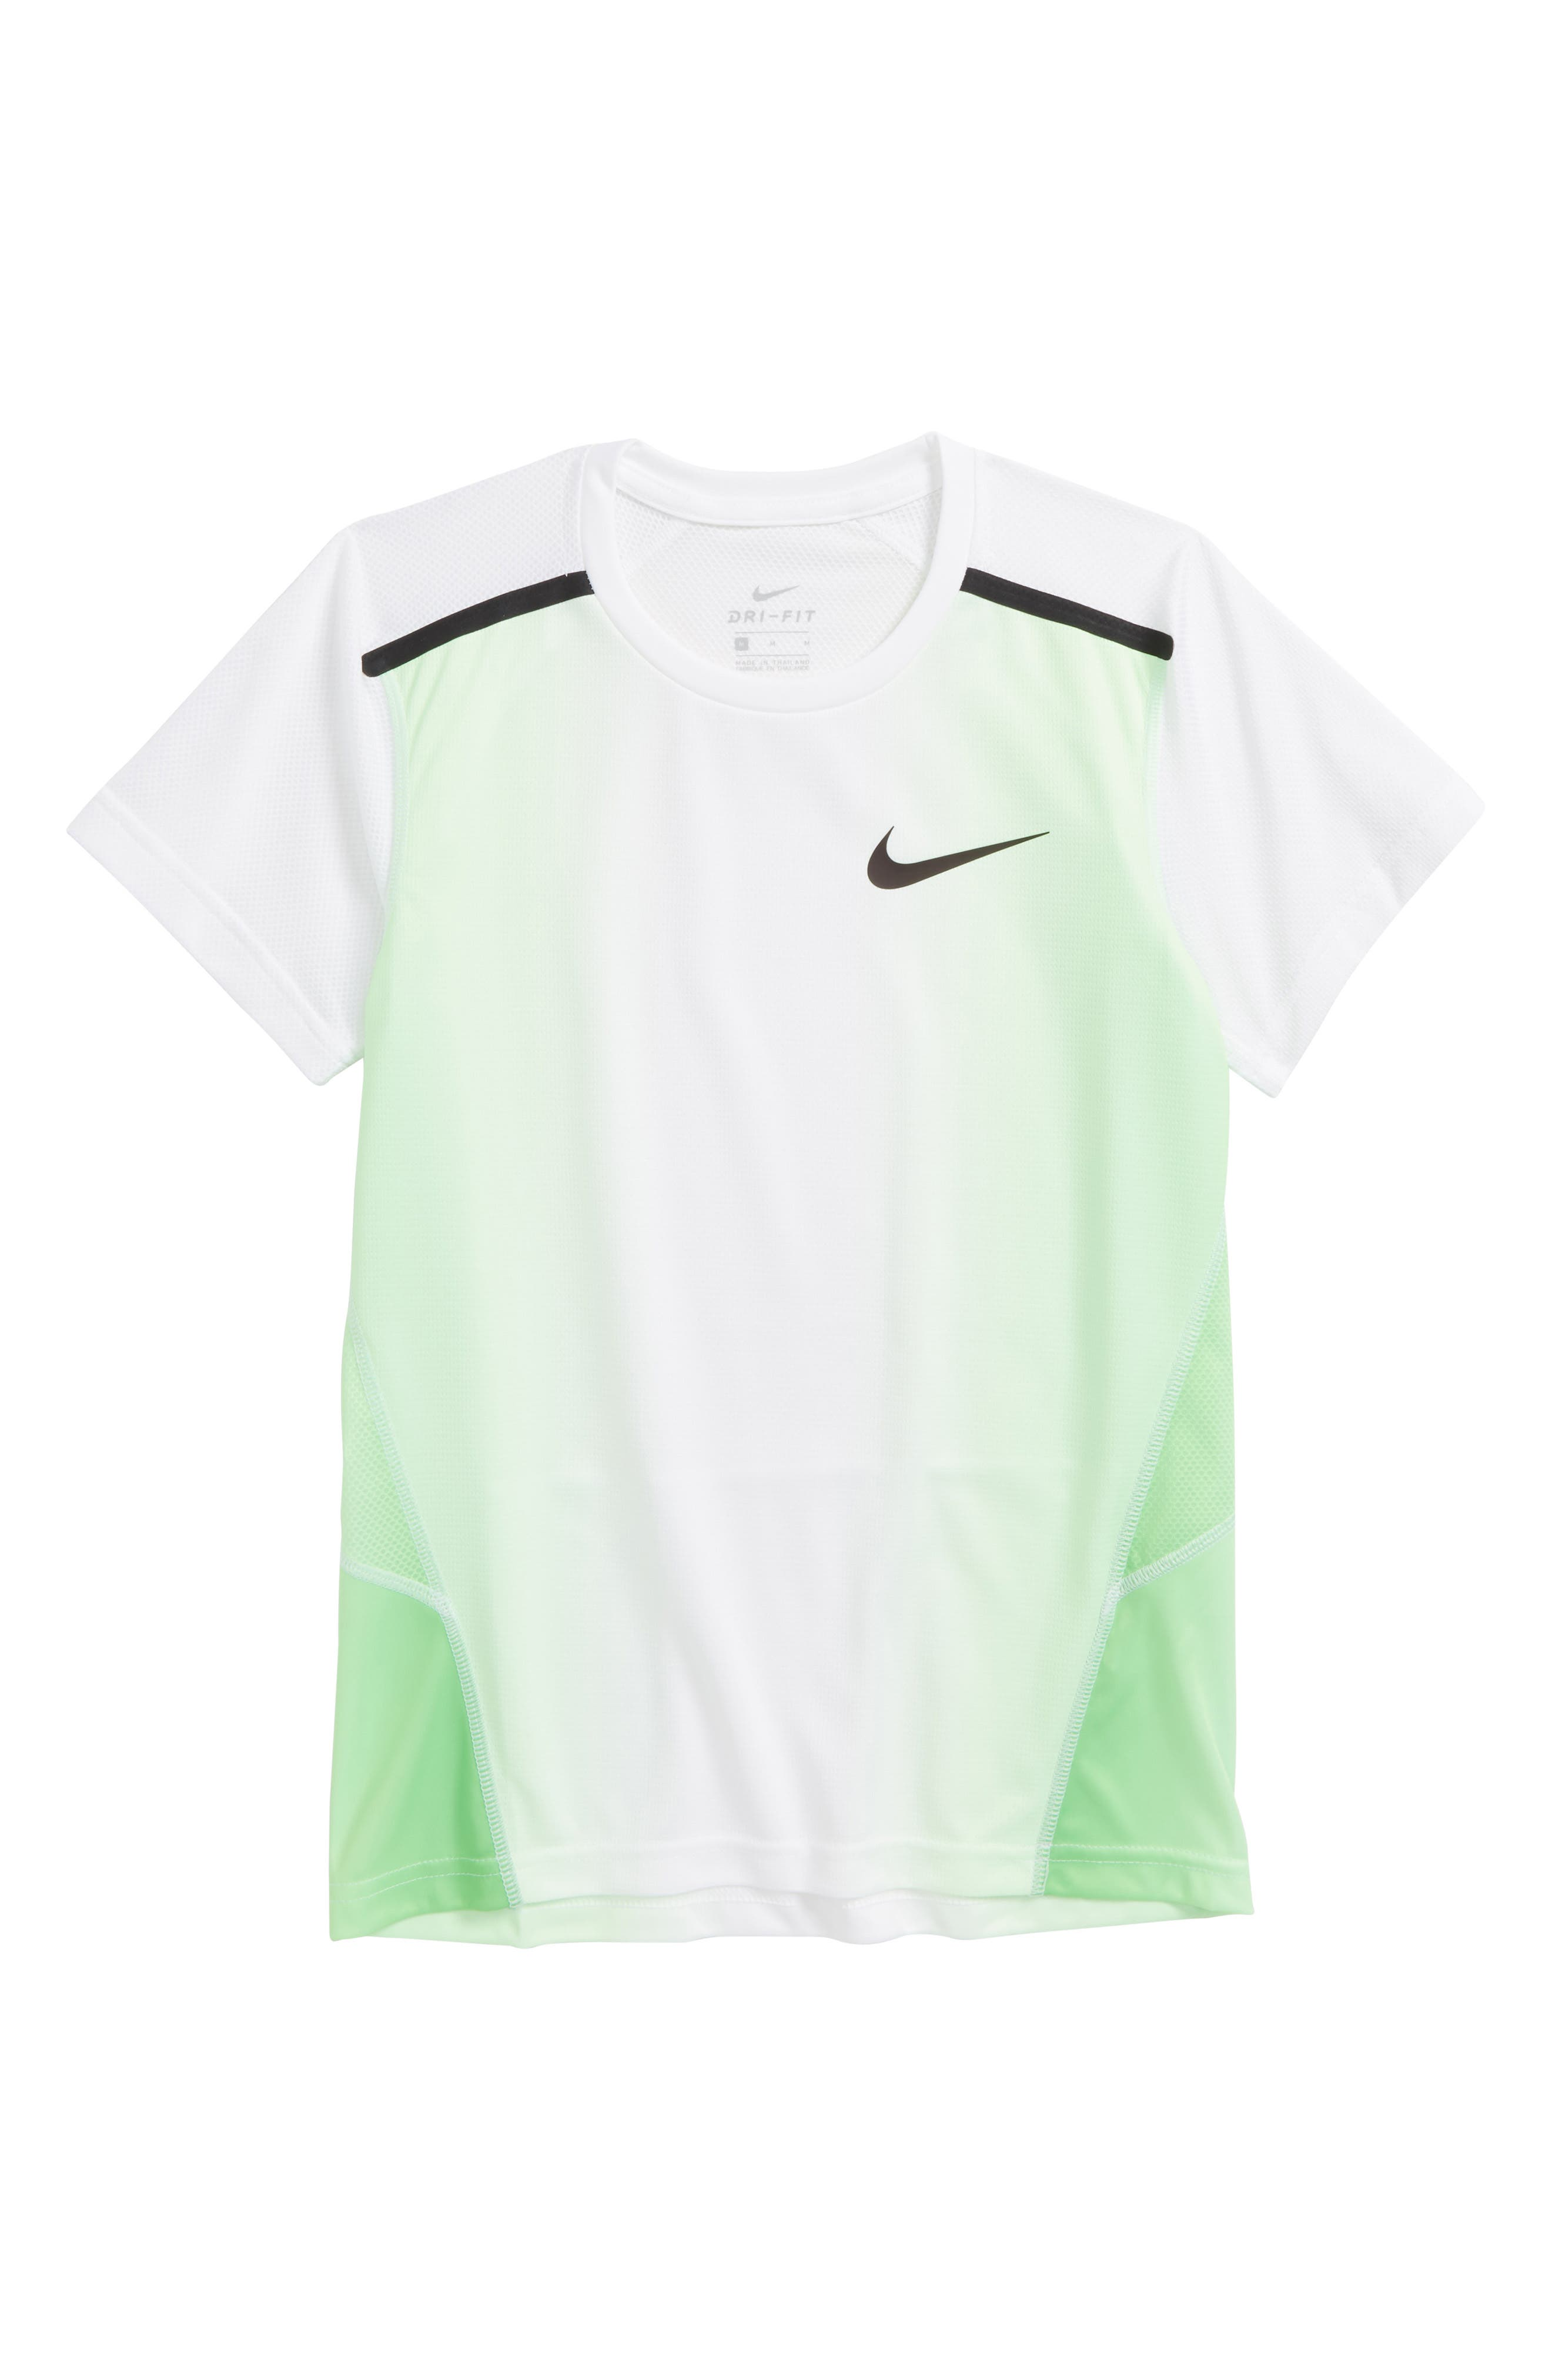 Breathe Dry Insta Air Shirt,                             Main thumbnail 1, color,                             398